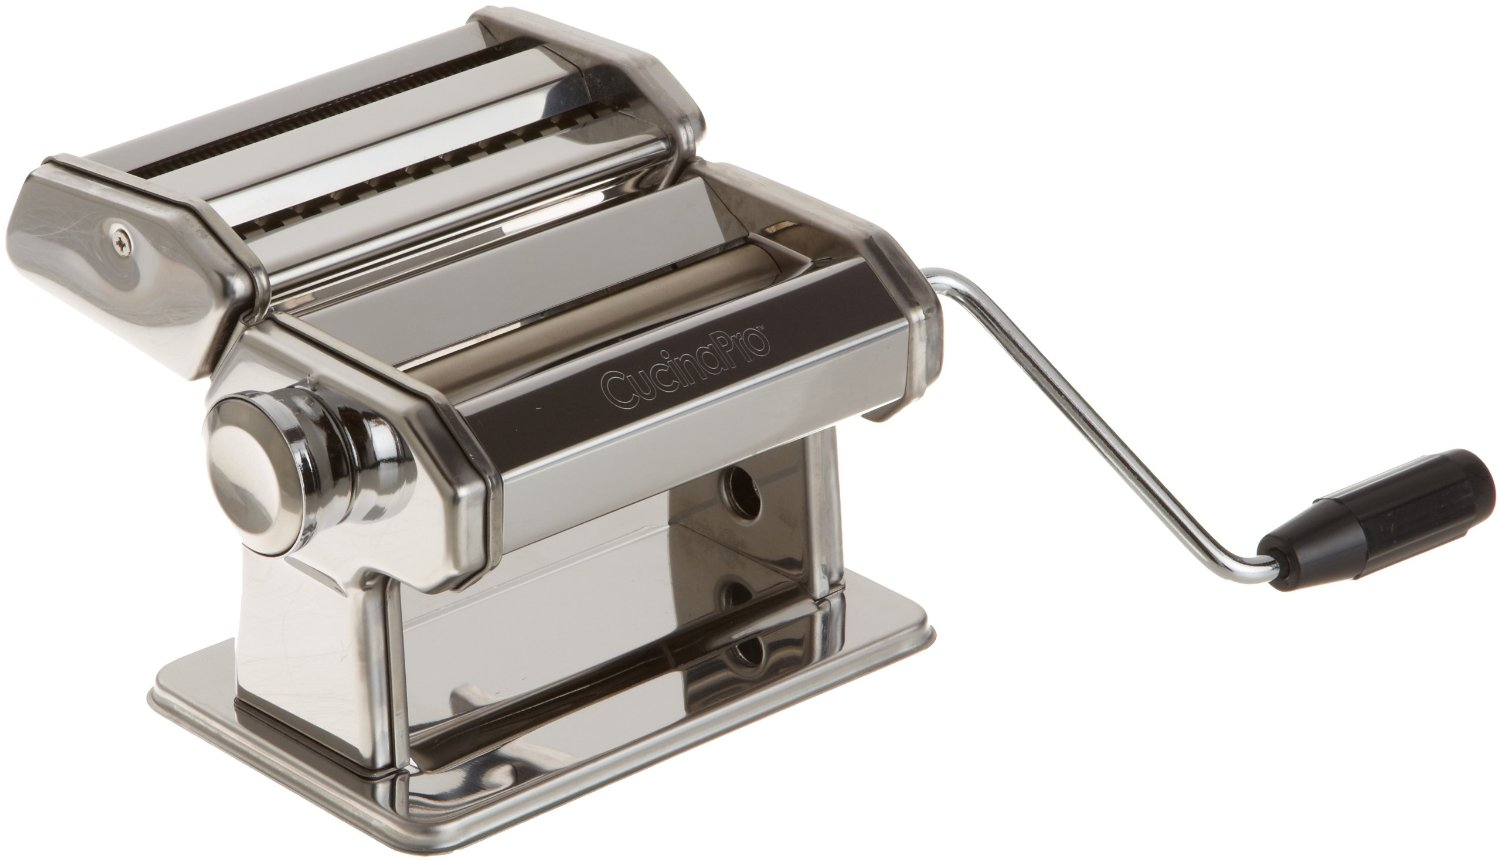 Amazon Cucinapro Cucinapro 177 Pasta Fresh Pasta Machine Review Pasta Maker Hq